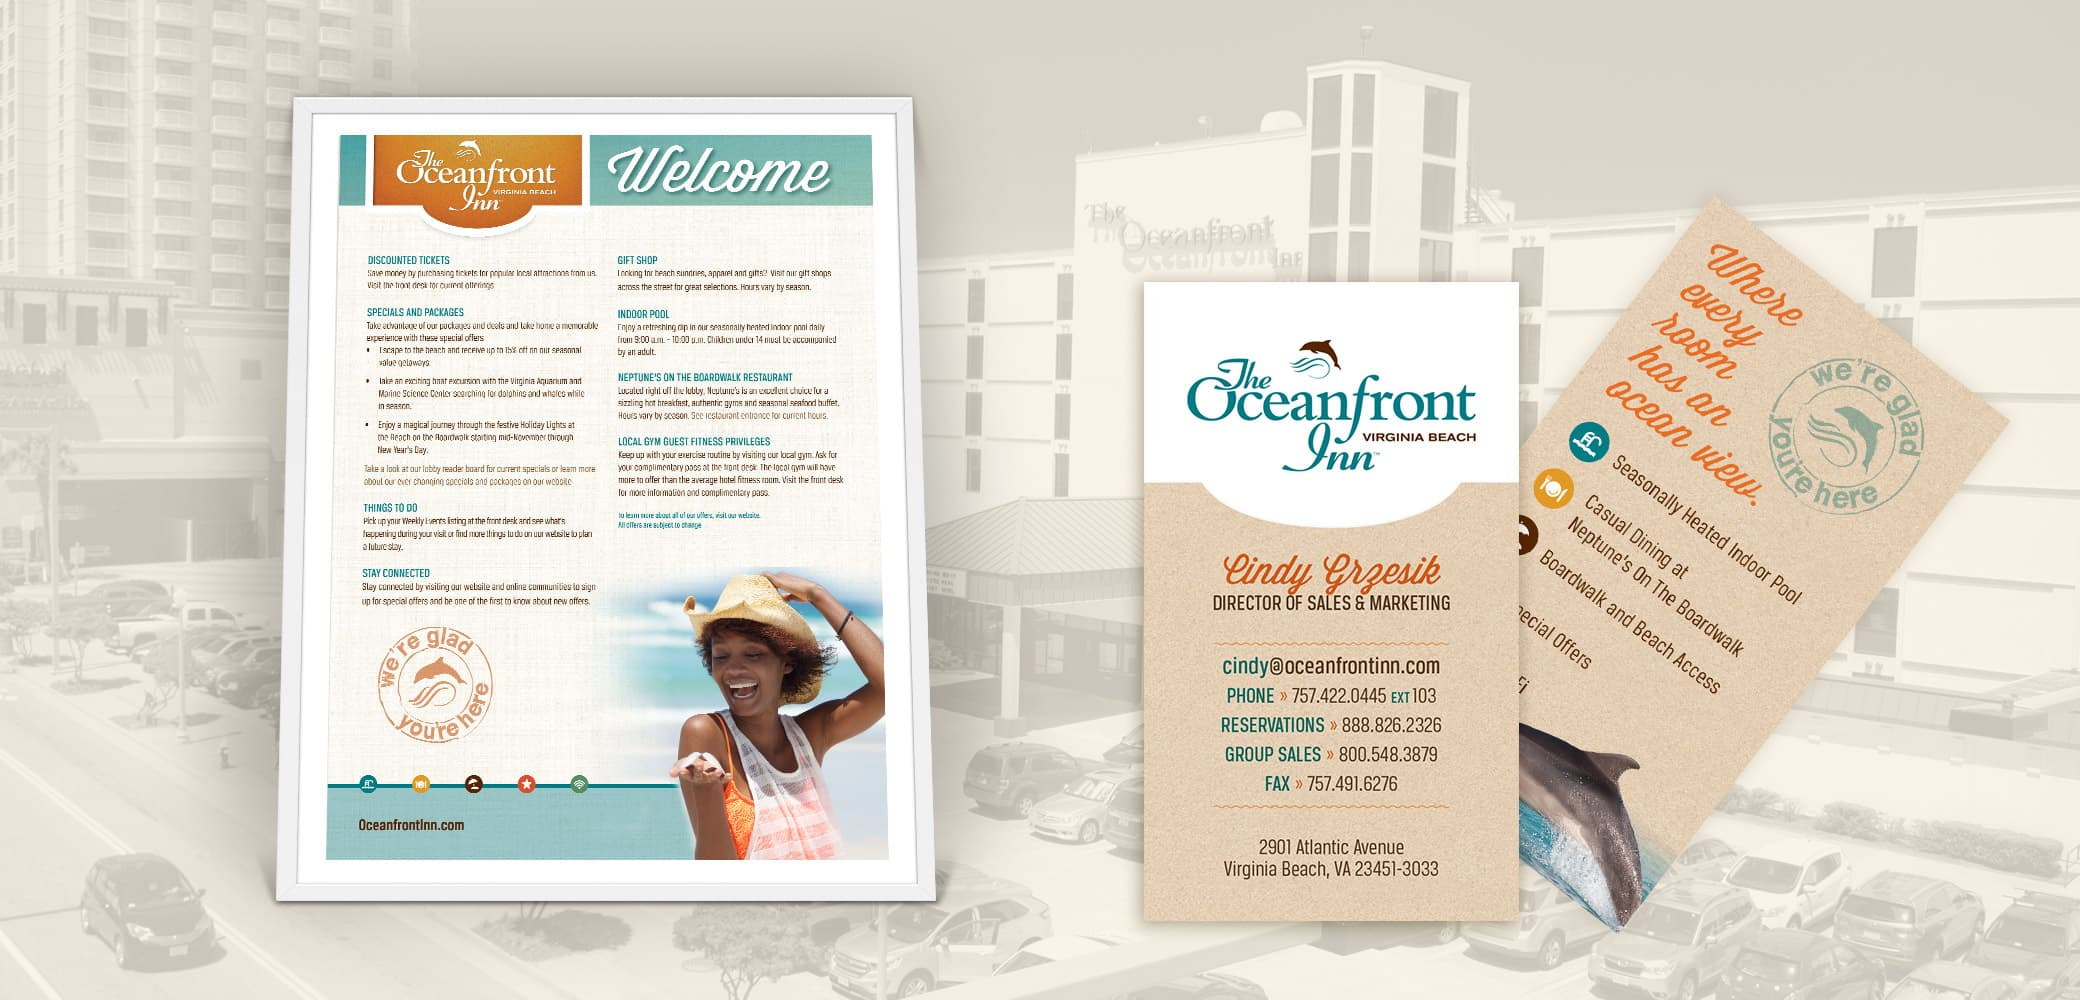 Oceanfront Inn Business Card and Lobby Poster Design by Red Chalk Studios